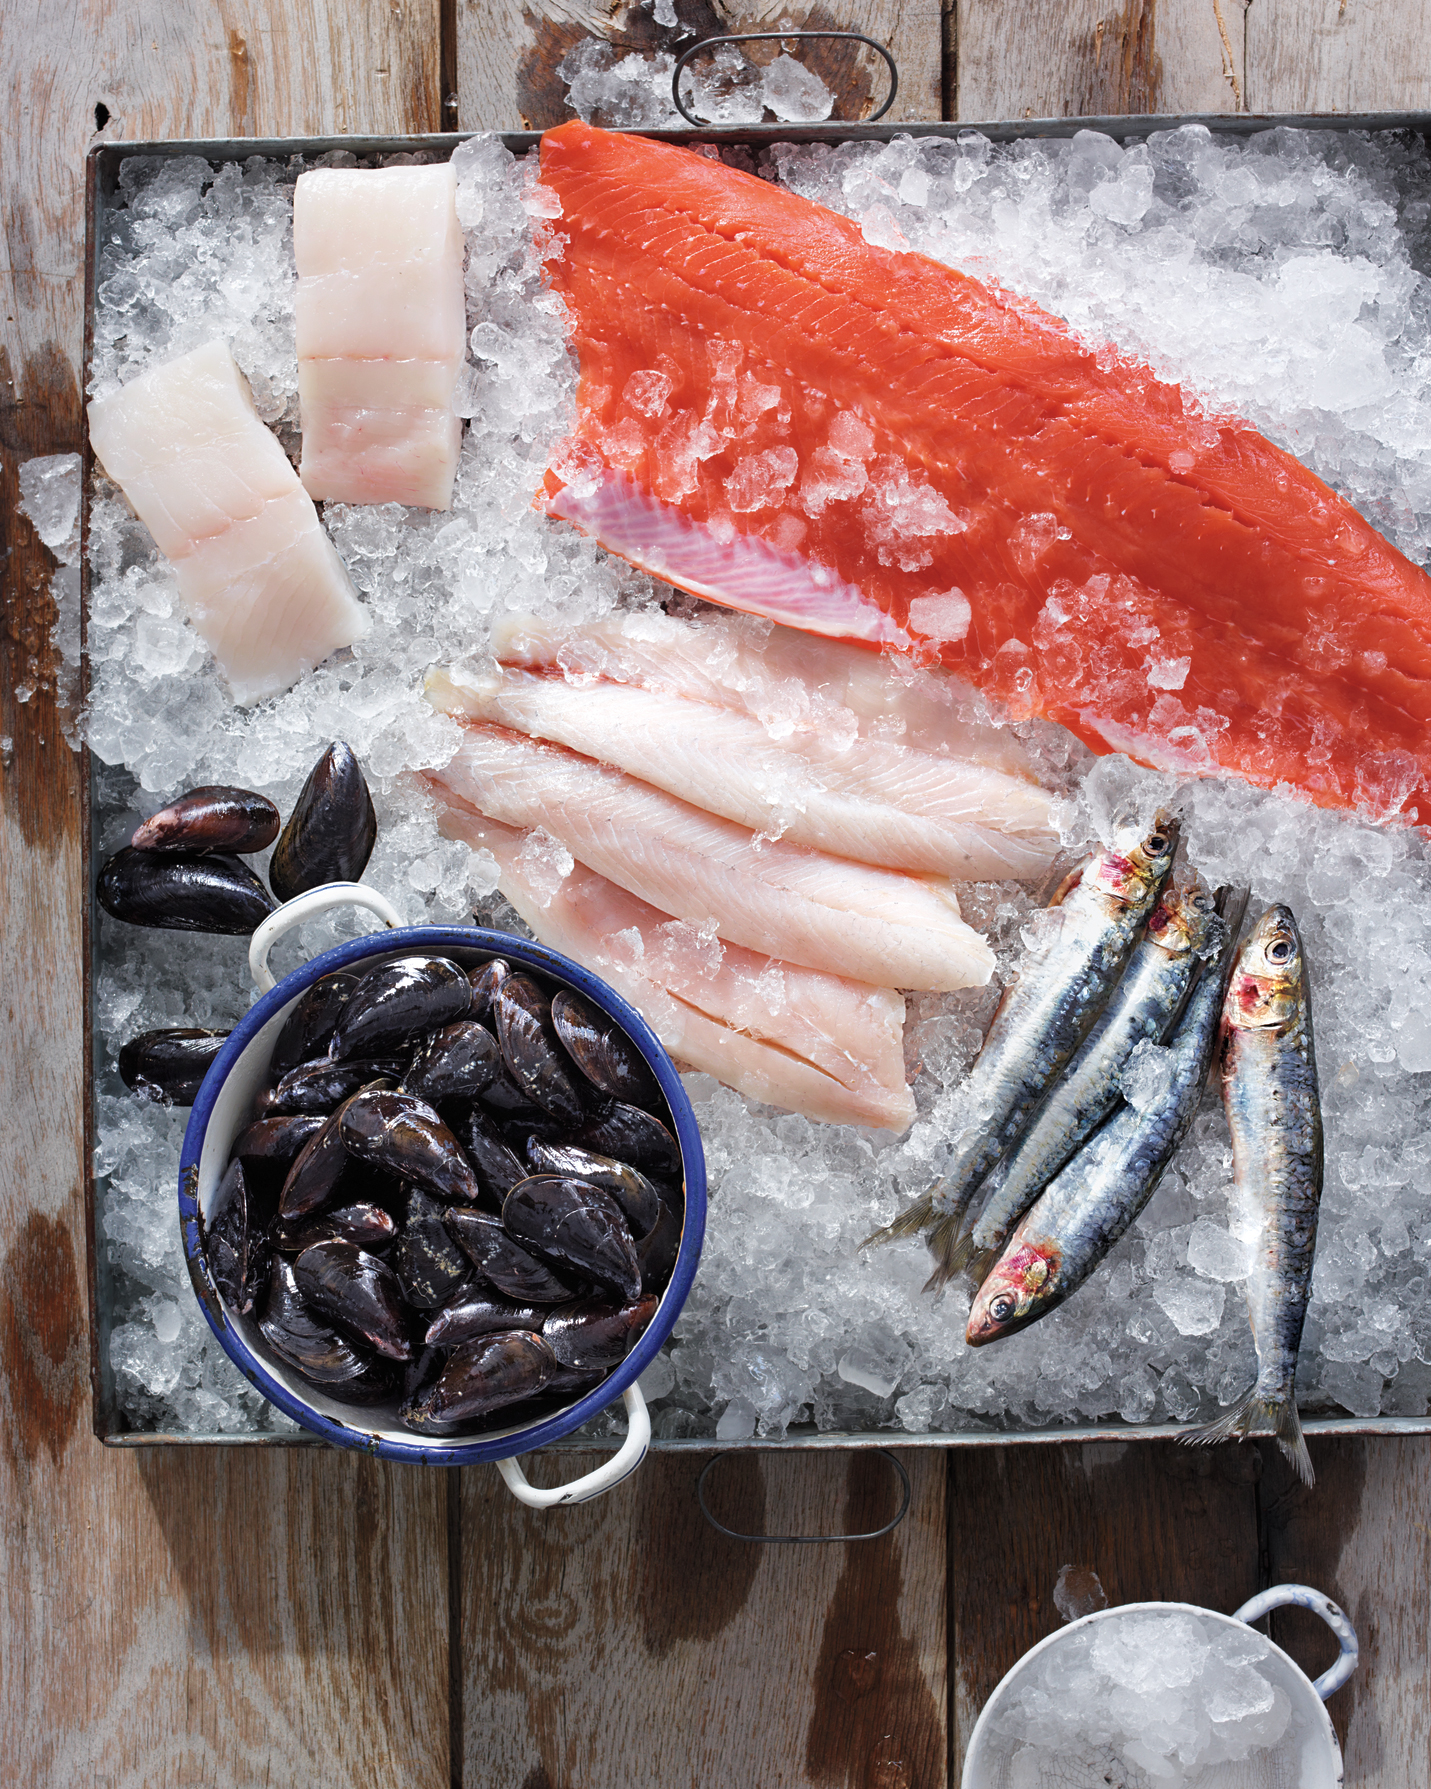 selection of sustainable fish, wild salmon, barramundi, halibut, mussels, and sardines over ice